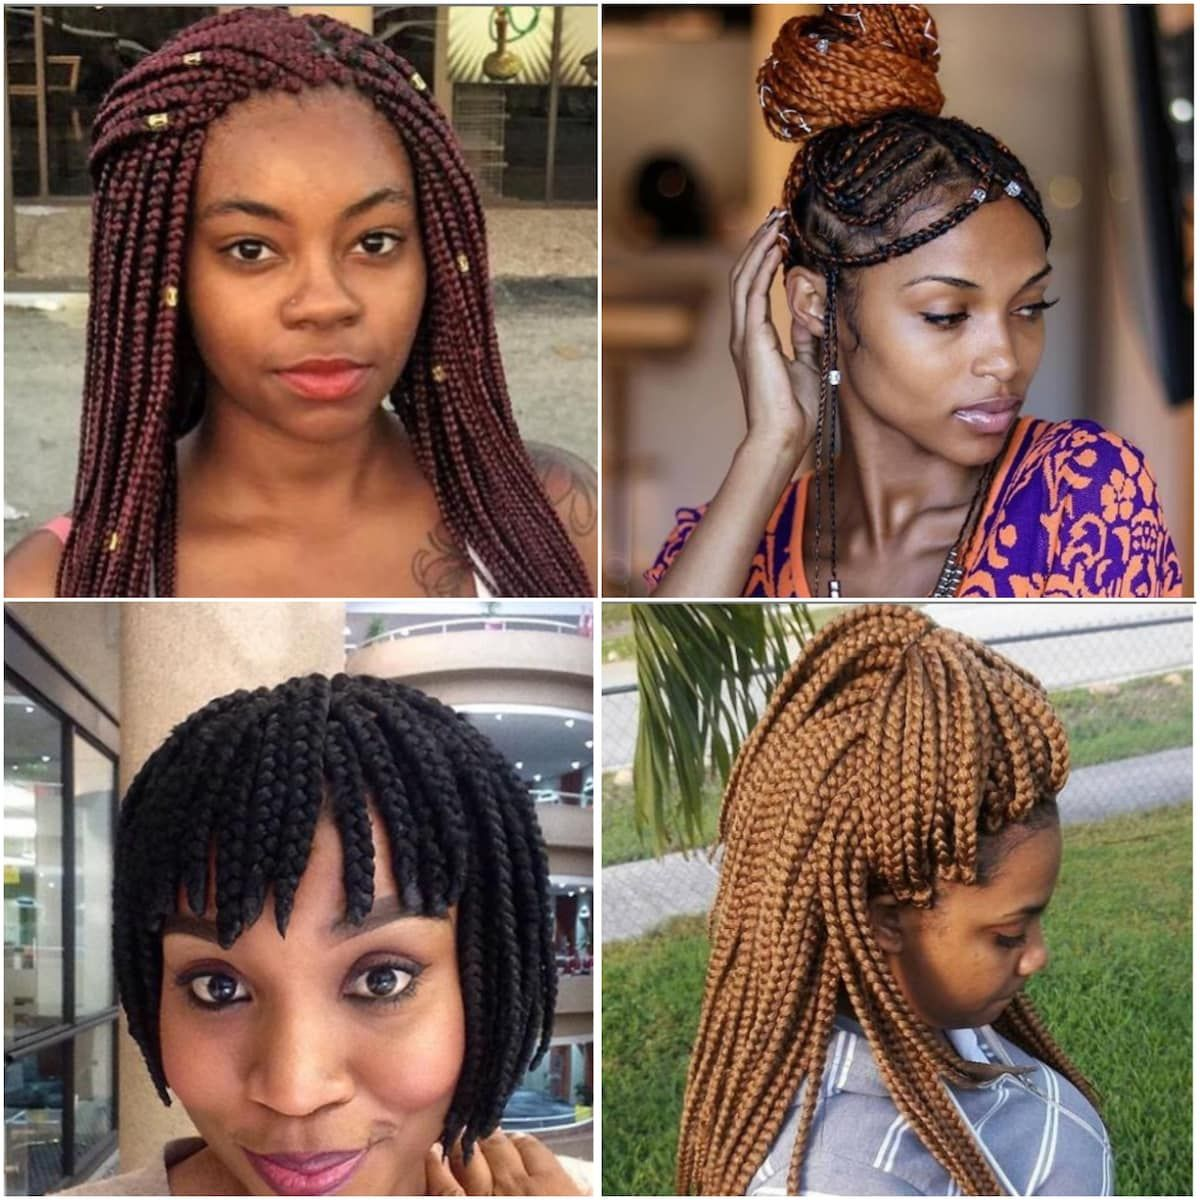 Free Hand Cornrows Hairstyle 2020 In 2020 African Braids Hairstyles New Braided Hairstyles Hair Styles